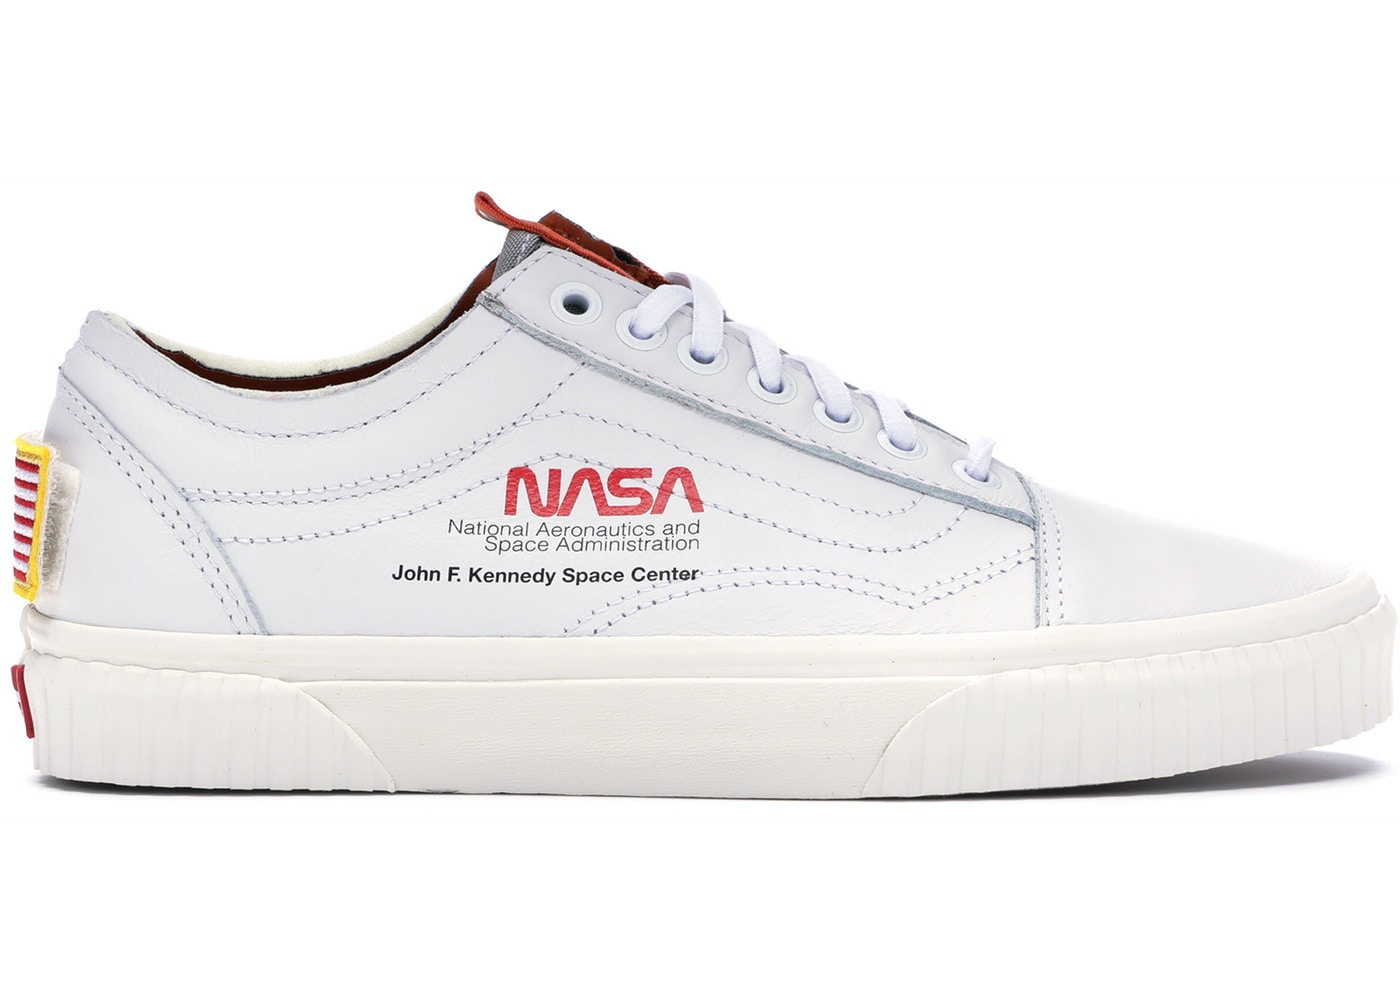 e117068208bbdc Vans Old Skool NASA Space Voyager True White - VN0A38G1UP9 ...